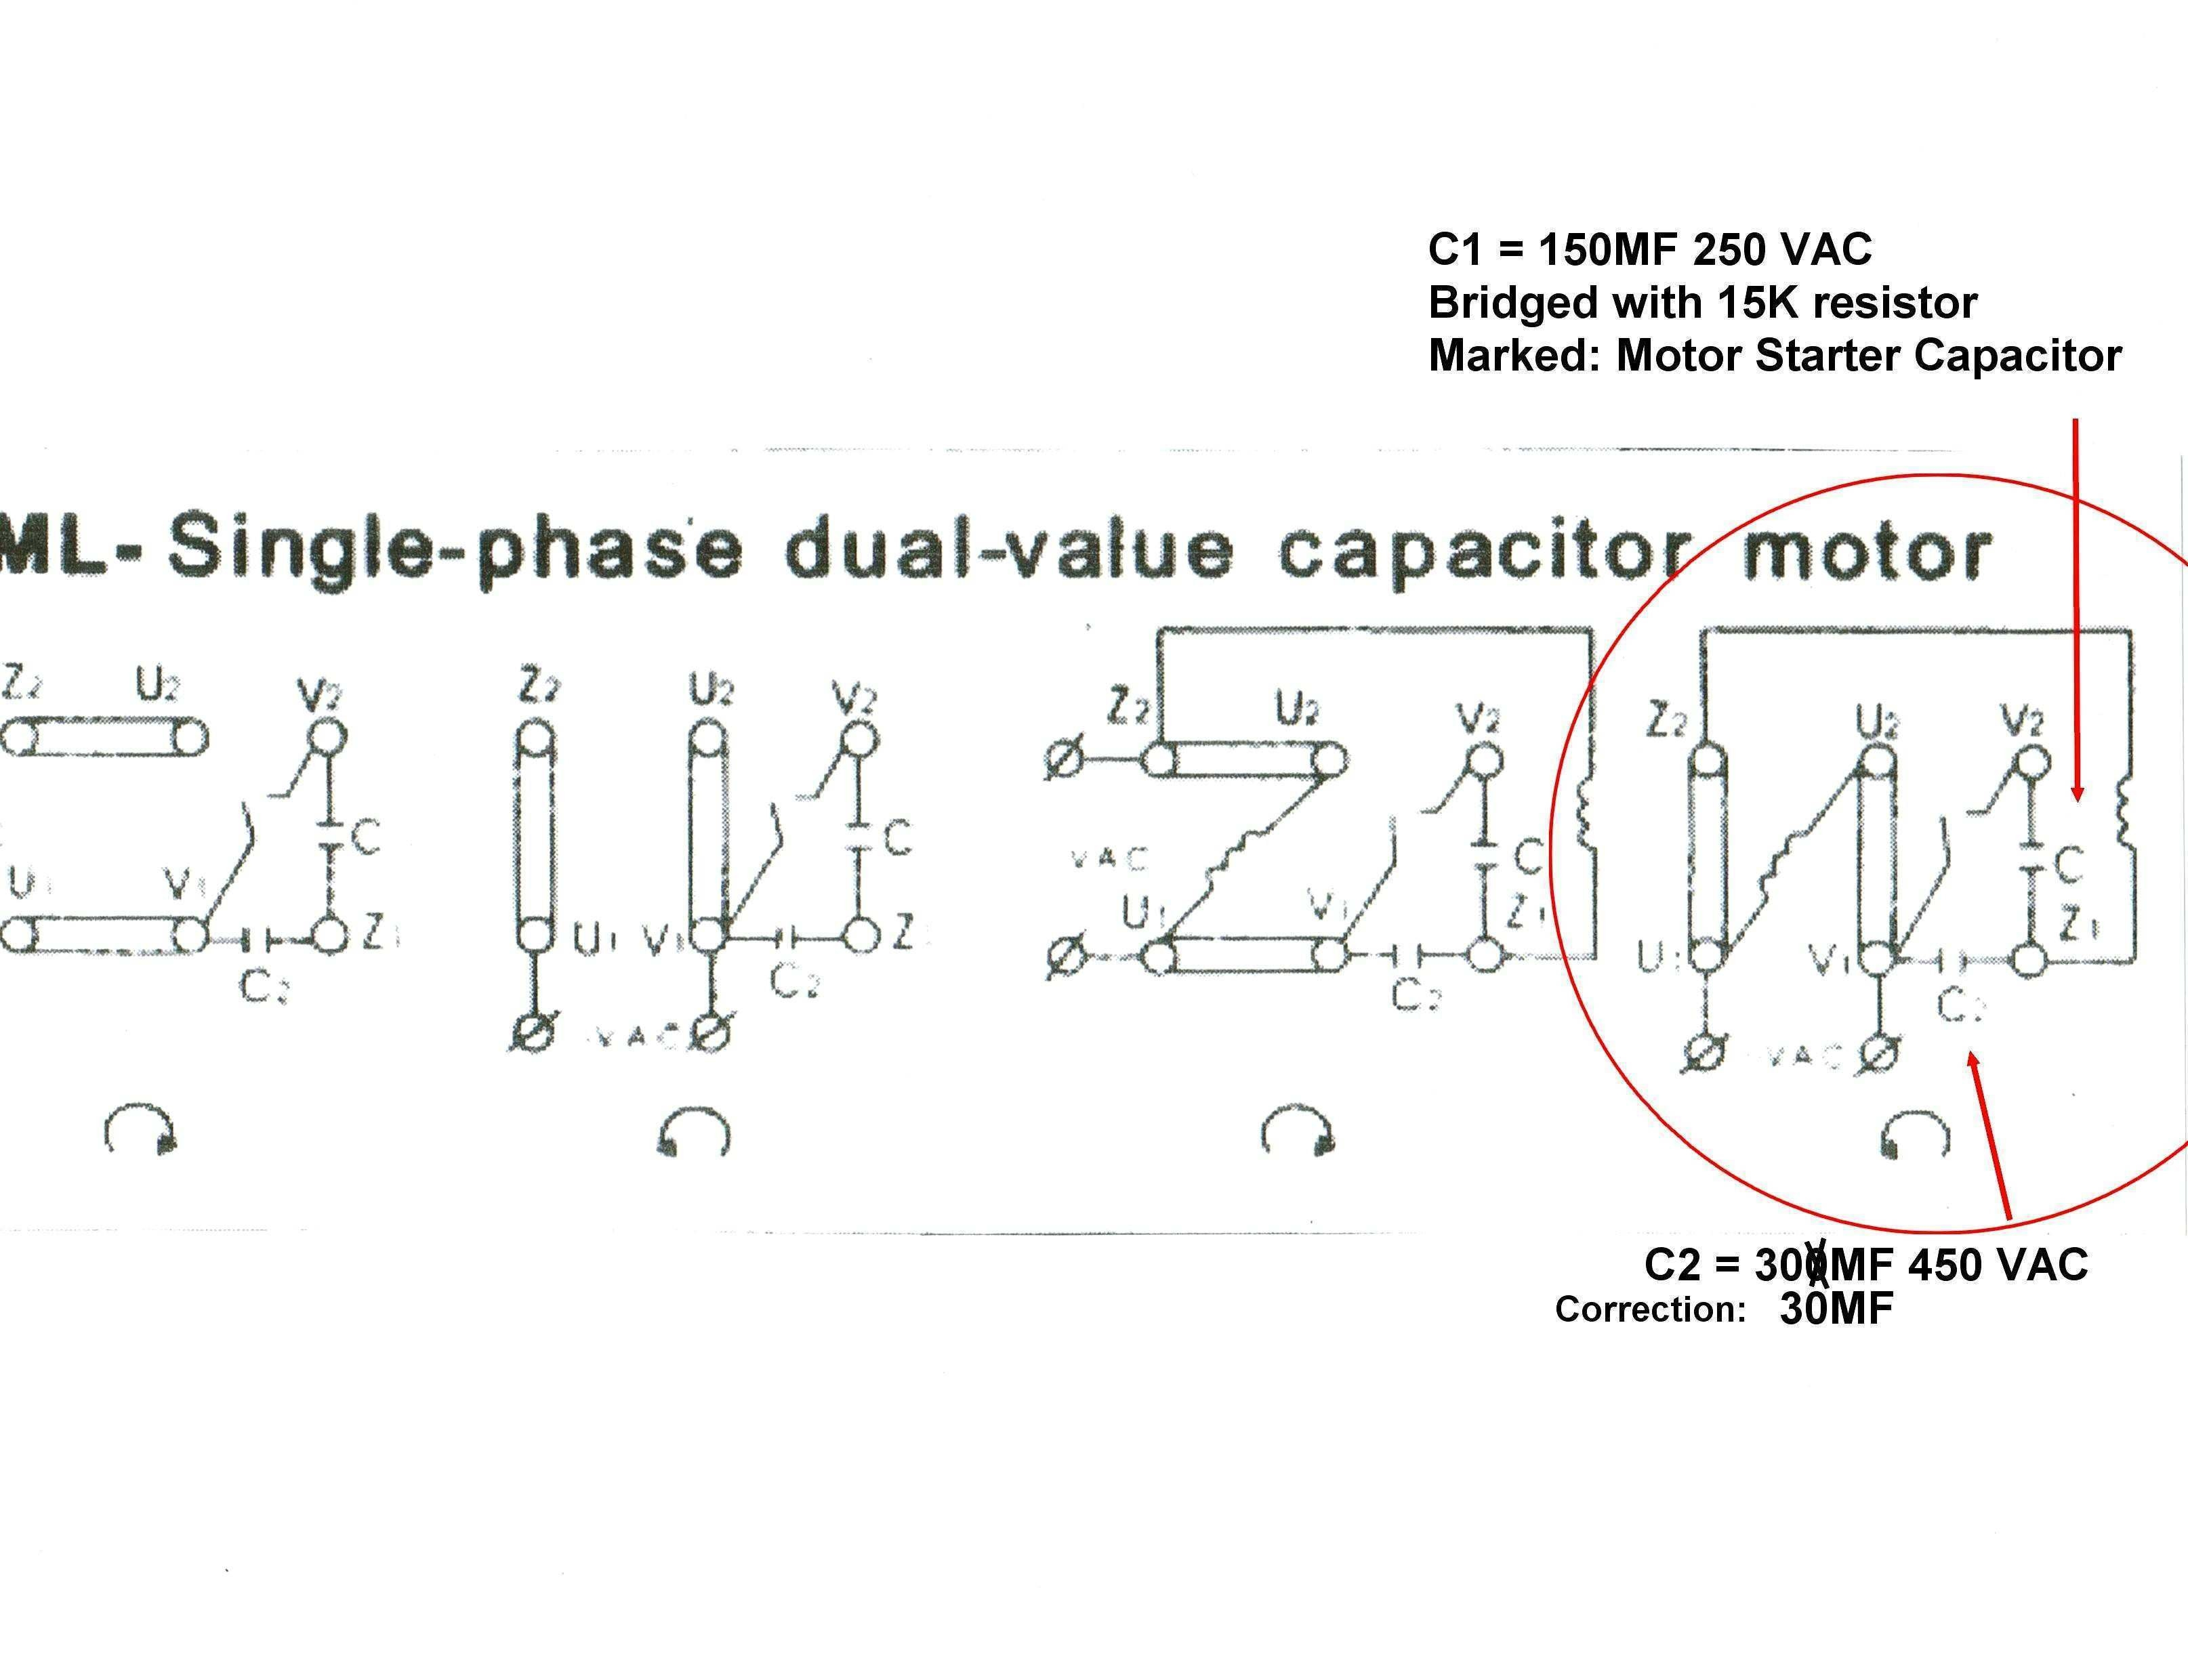 3 phase motor wiring diagram 12 leads Collection-3 Phase Motor Wiring Diagram 9 Leads Perfect Luxury 9 Lead Motor Wiring Diagram Pattern Electrical Diagram 8-p